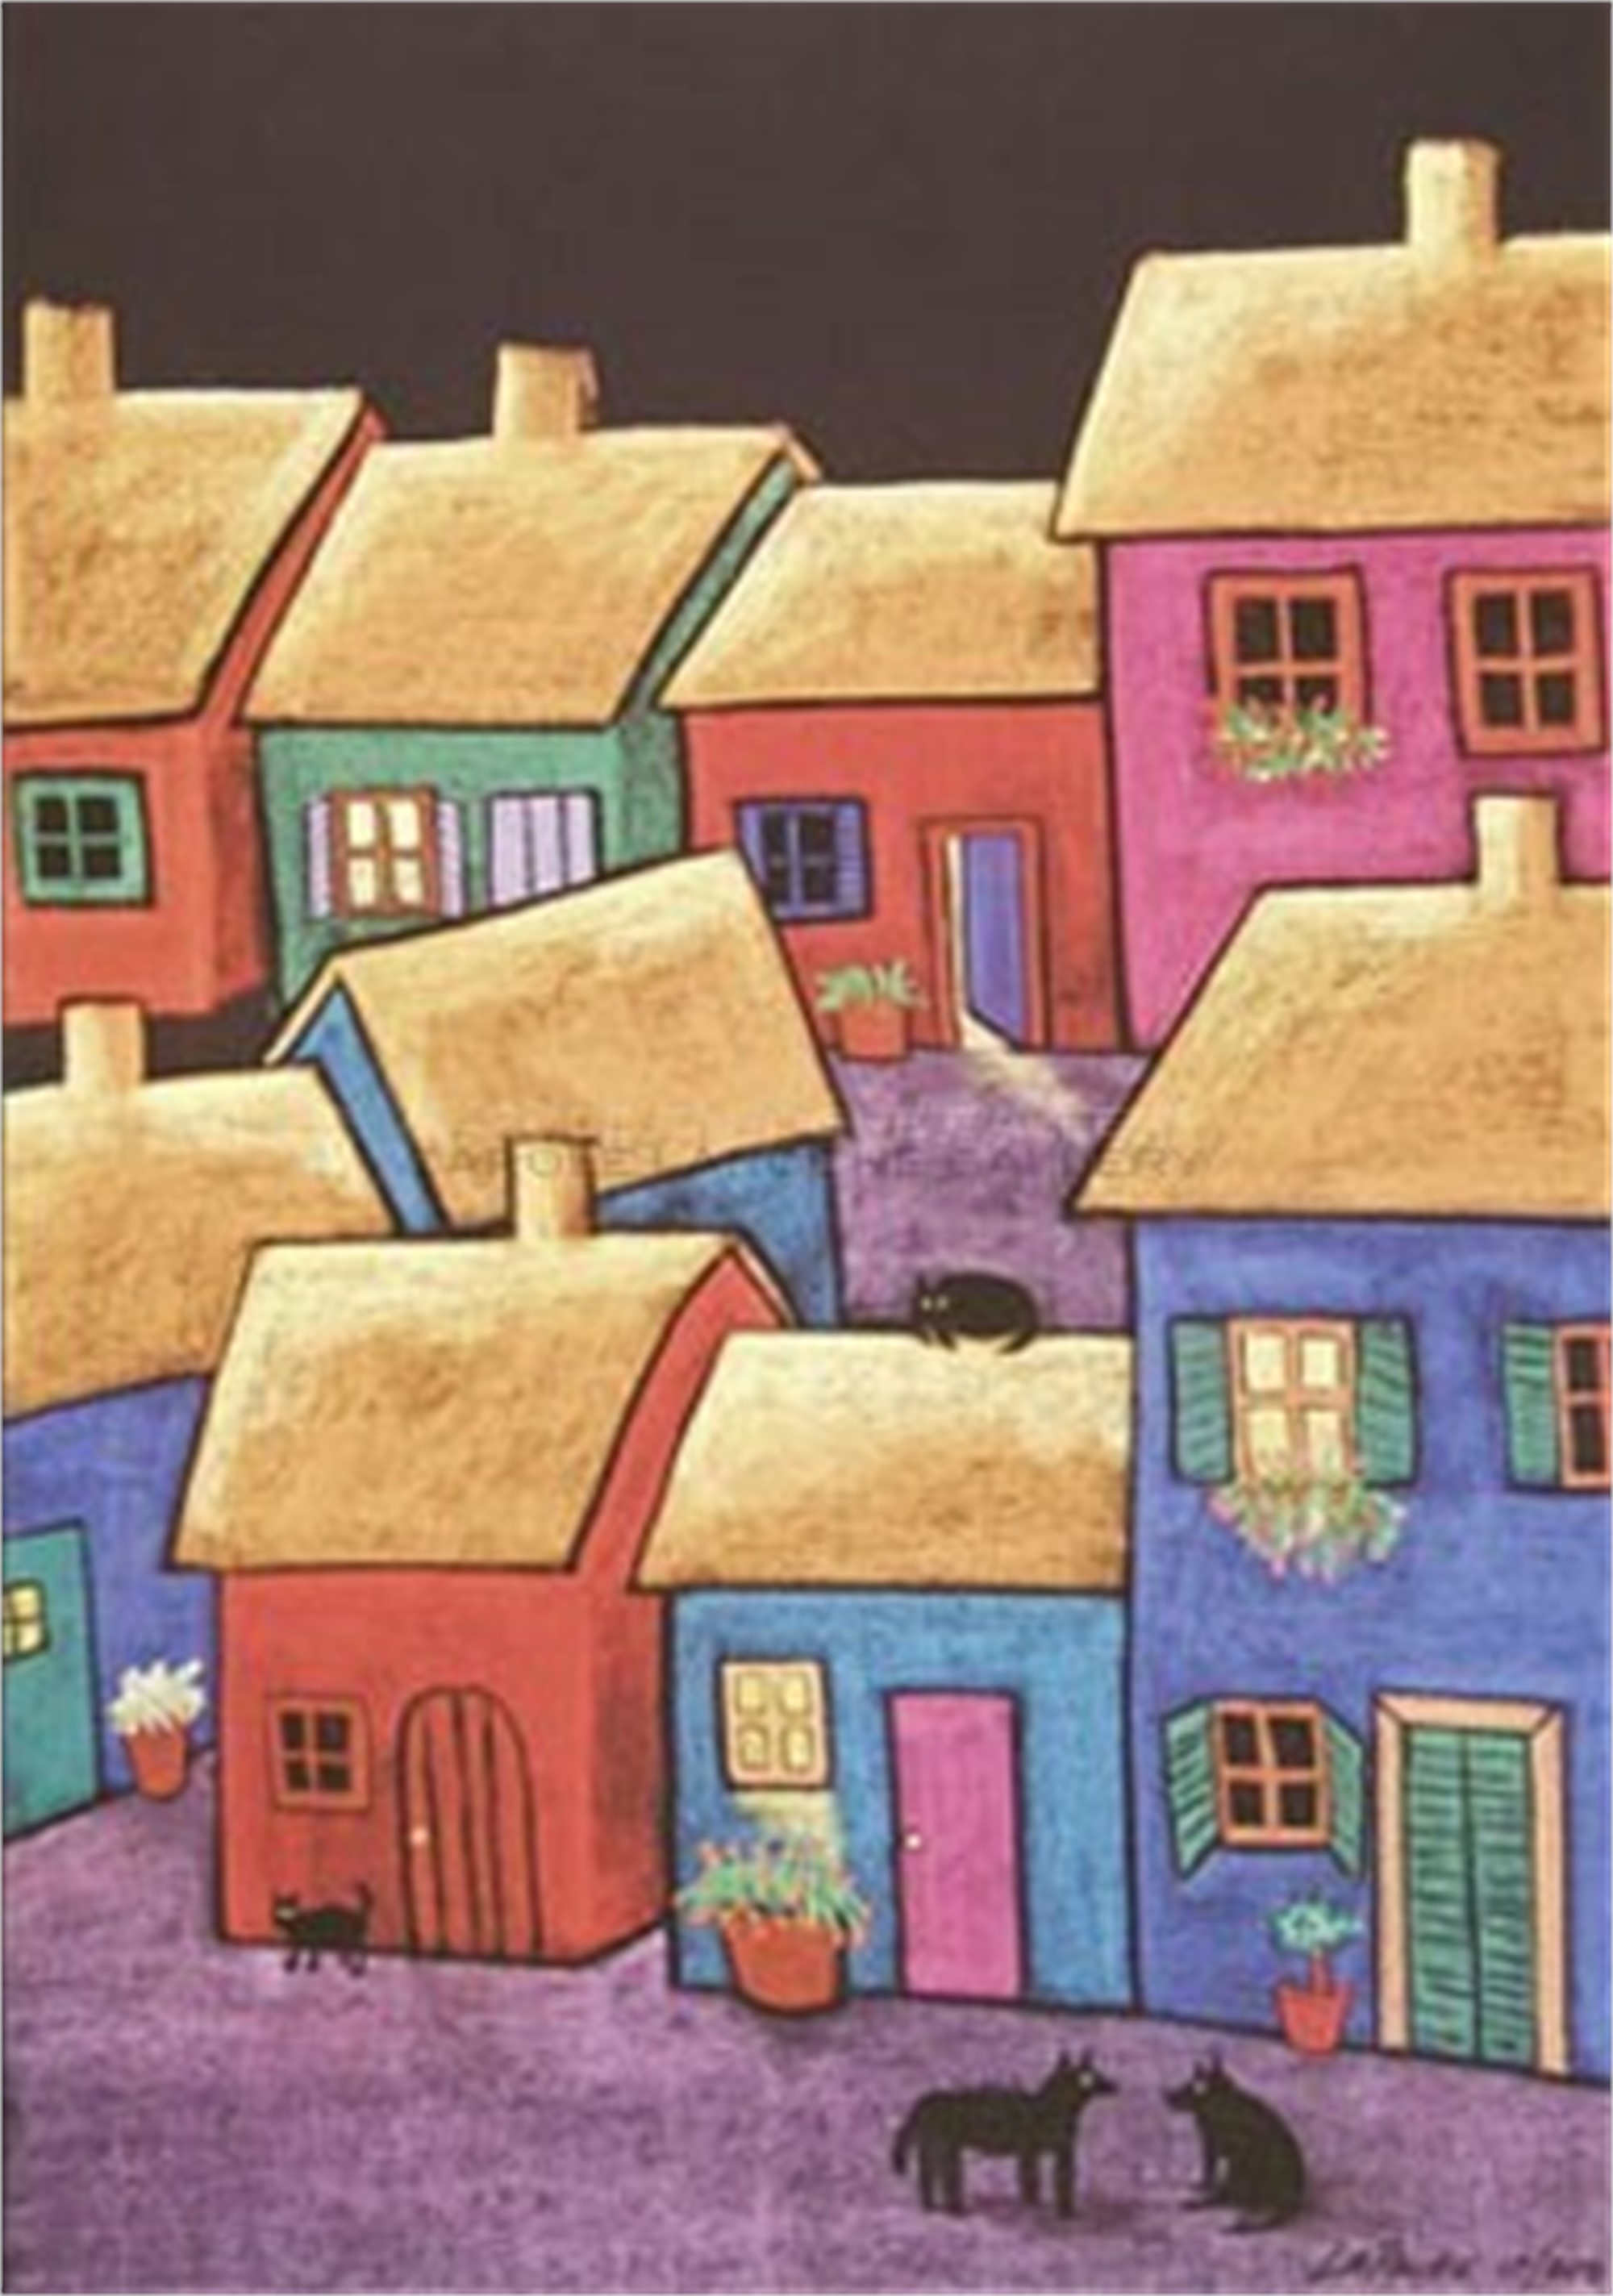 "LITTLE VILLAGE - limited edition giclee on canvas or on paper w/frame size of: (large) 54""x40"" $3700 or (medium) 38""x29"" $2200 by Carole LaRoche"